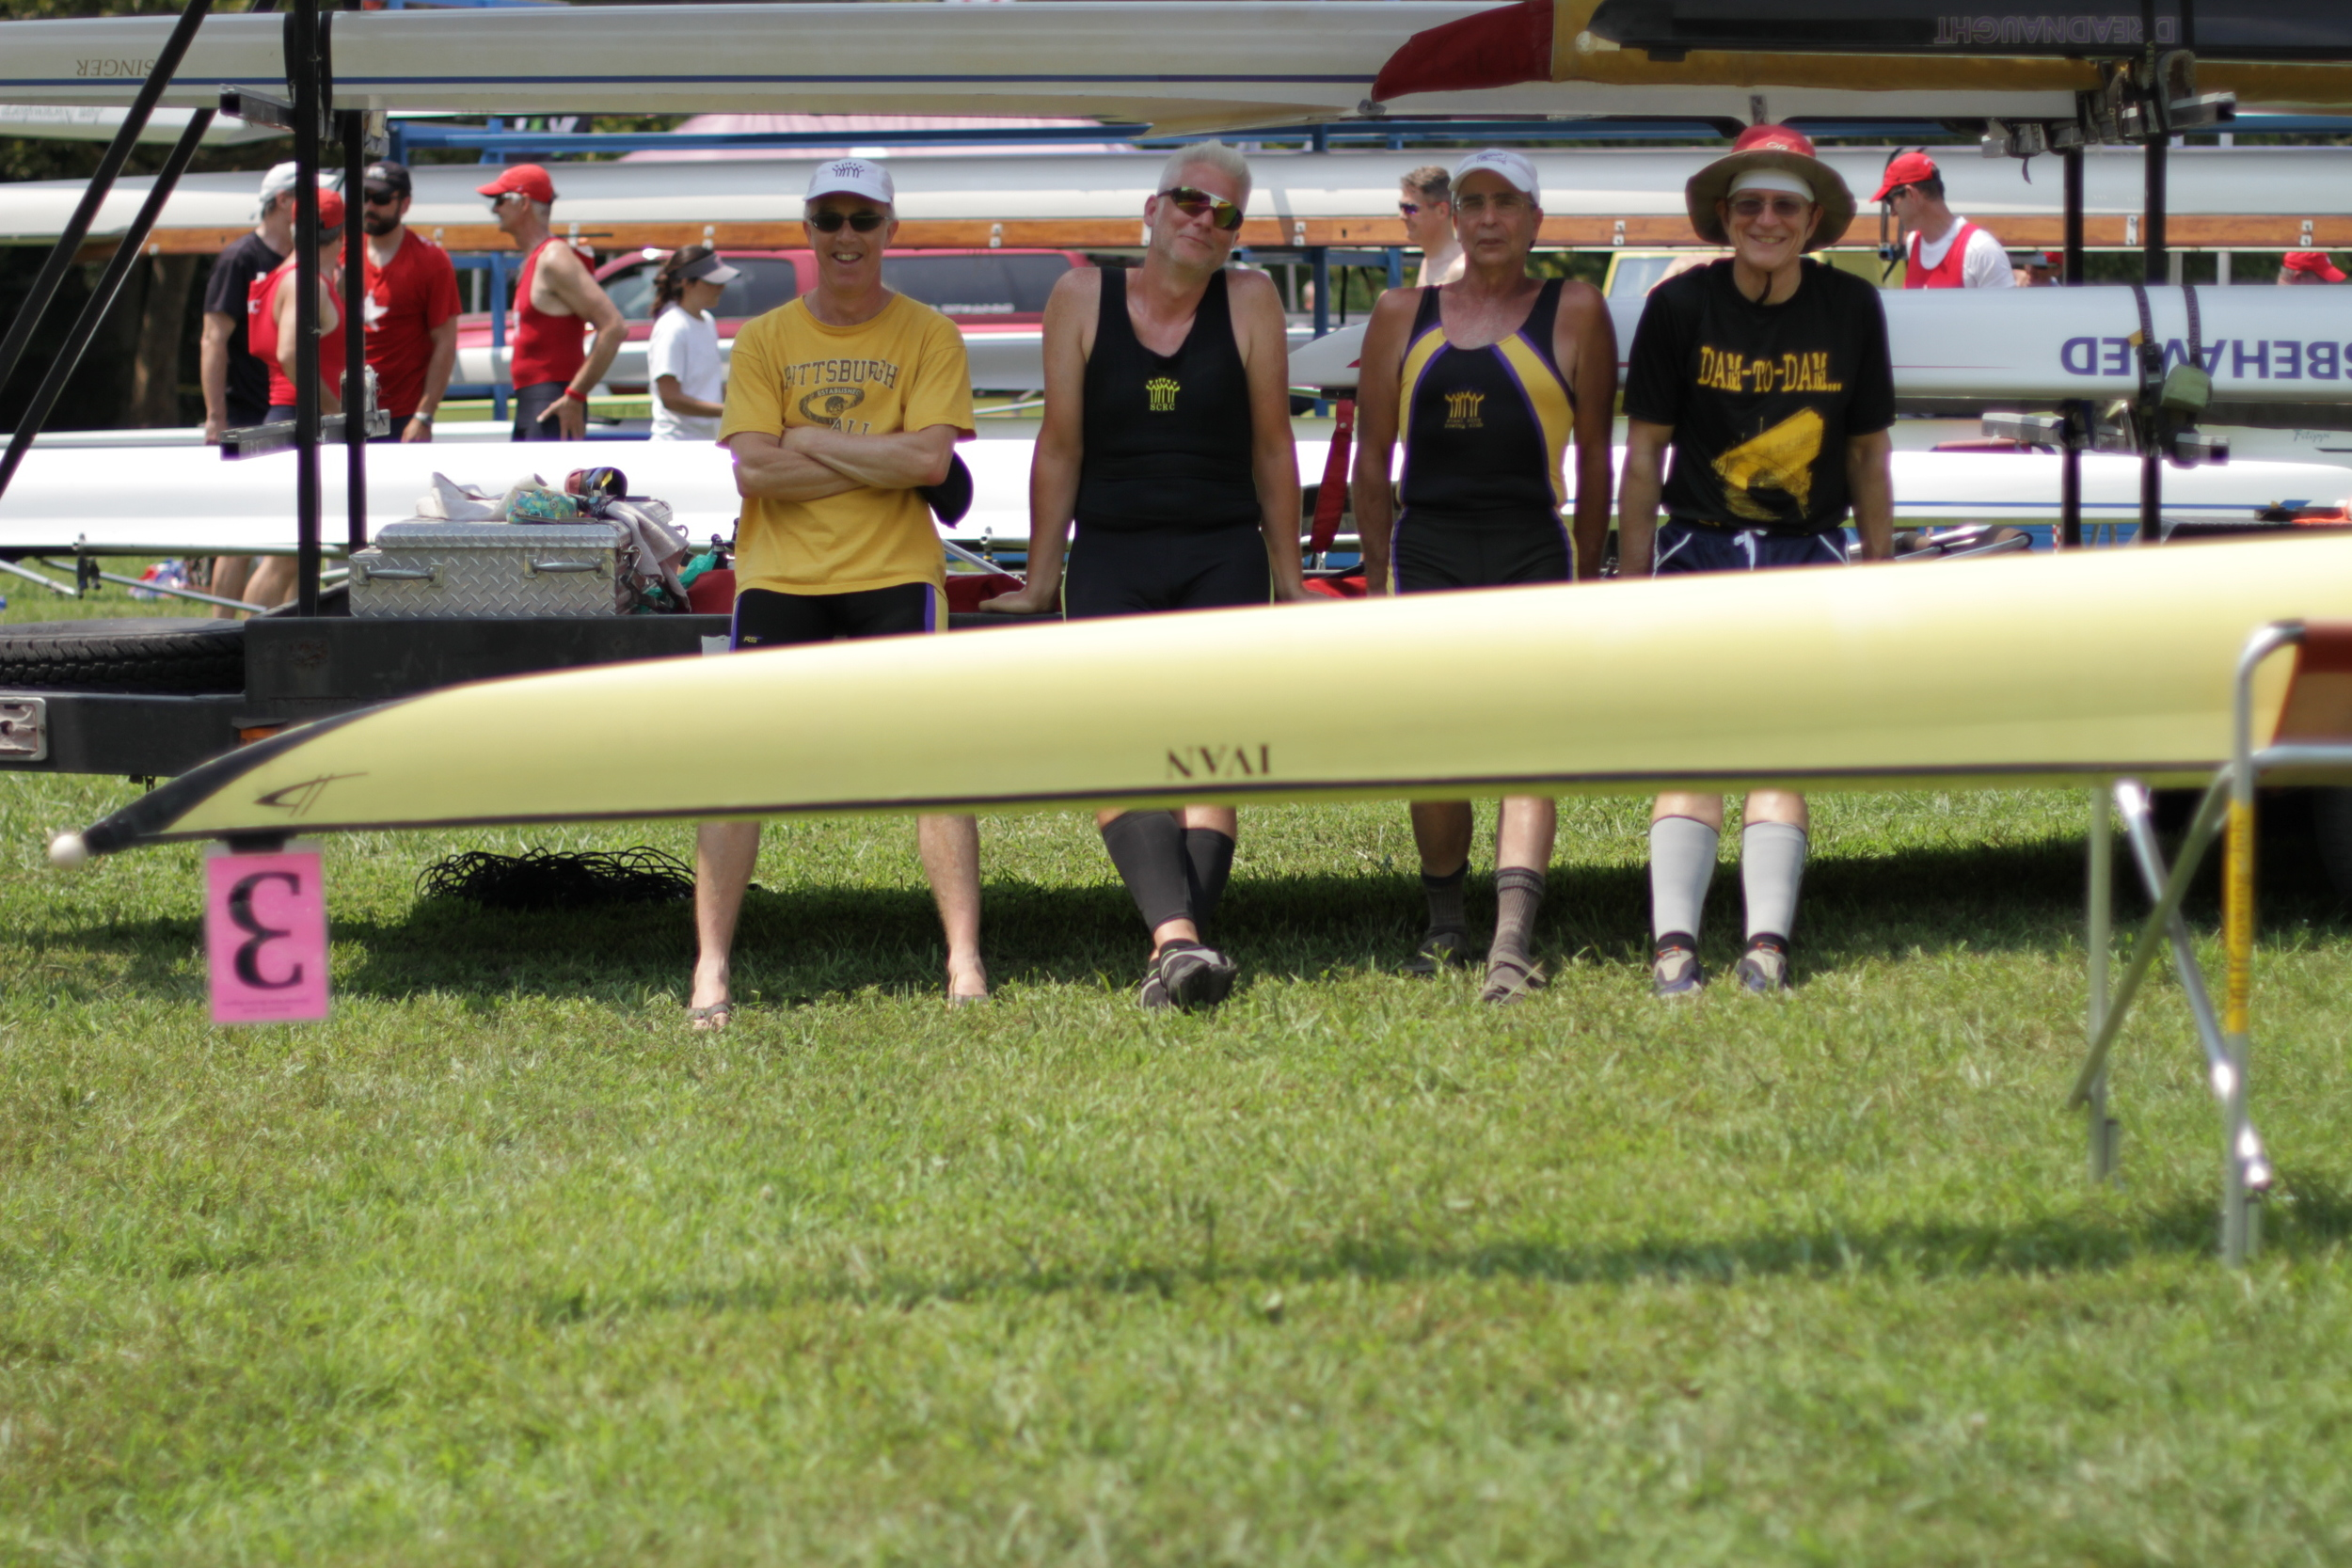 Steel City Men's 4X Diamond State Regatta 2015.JPG